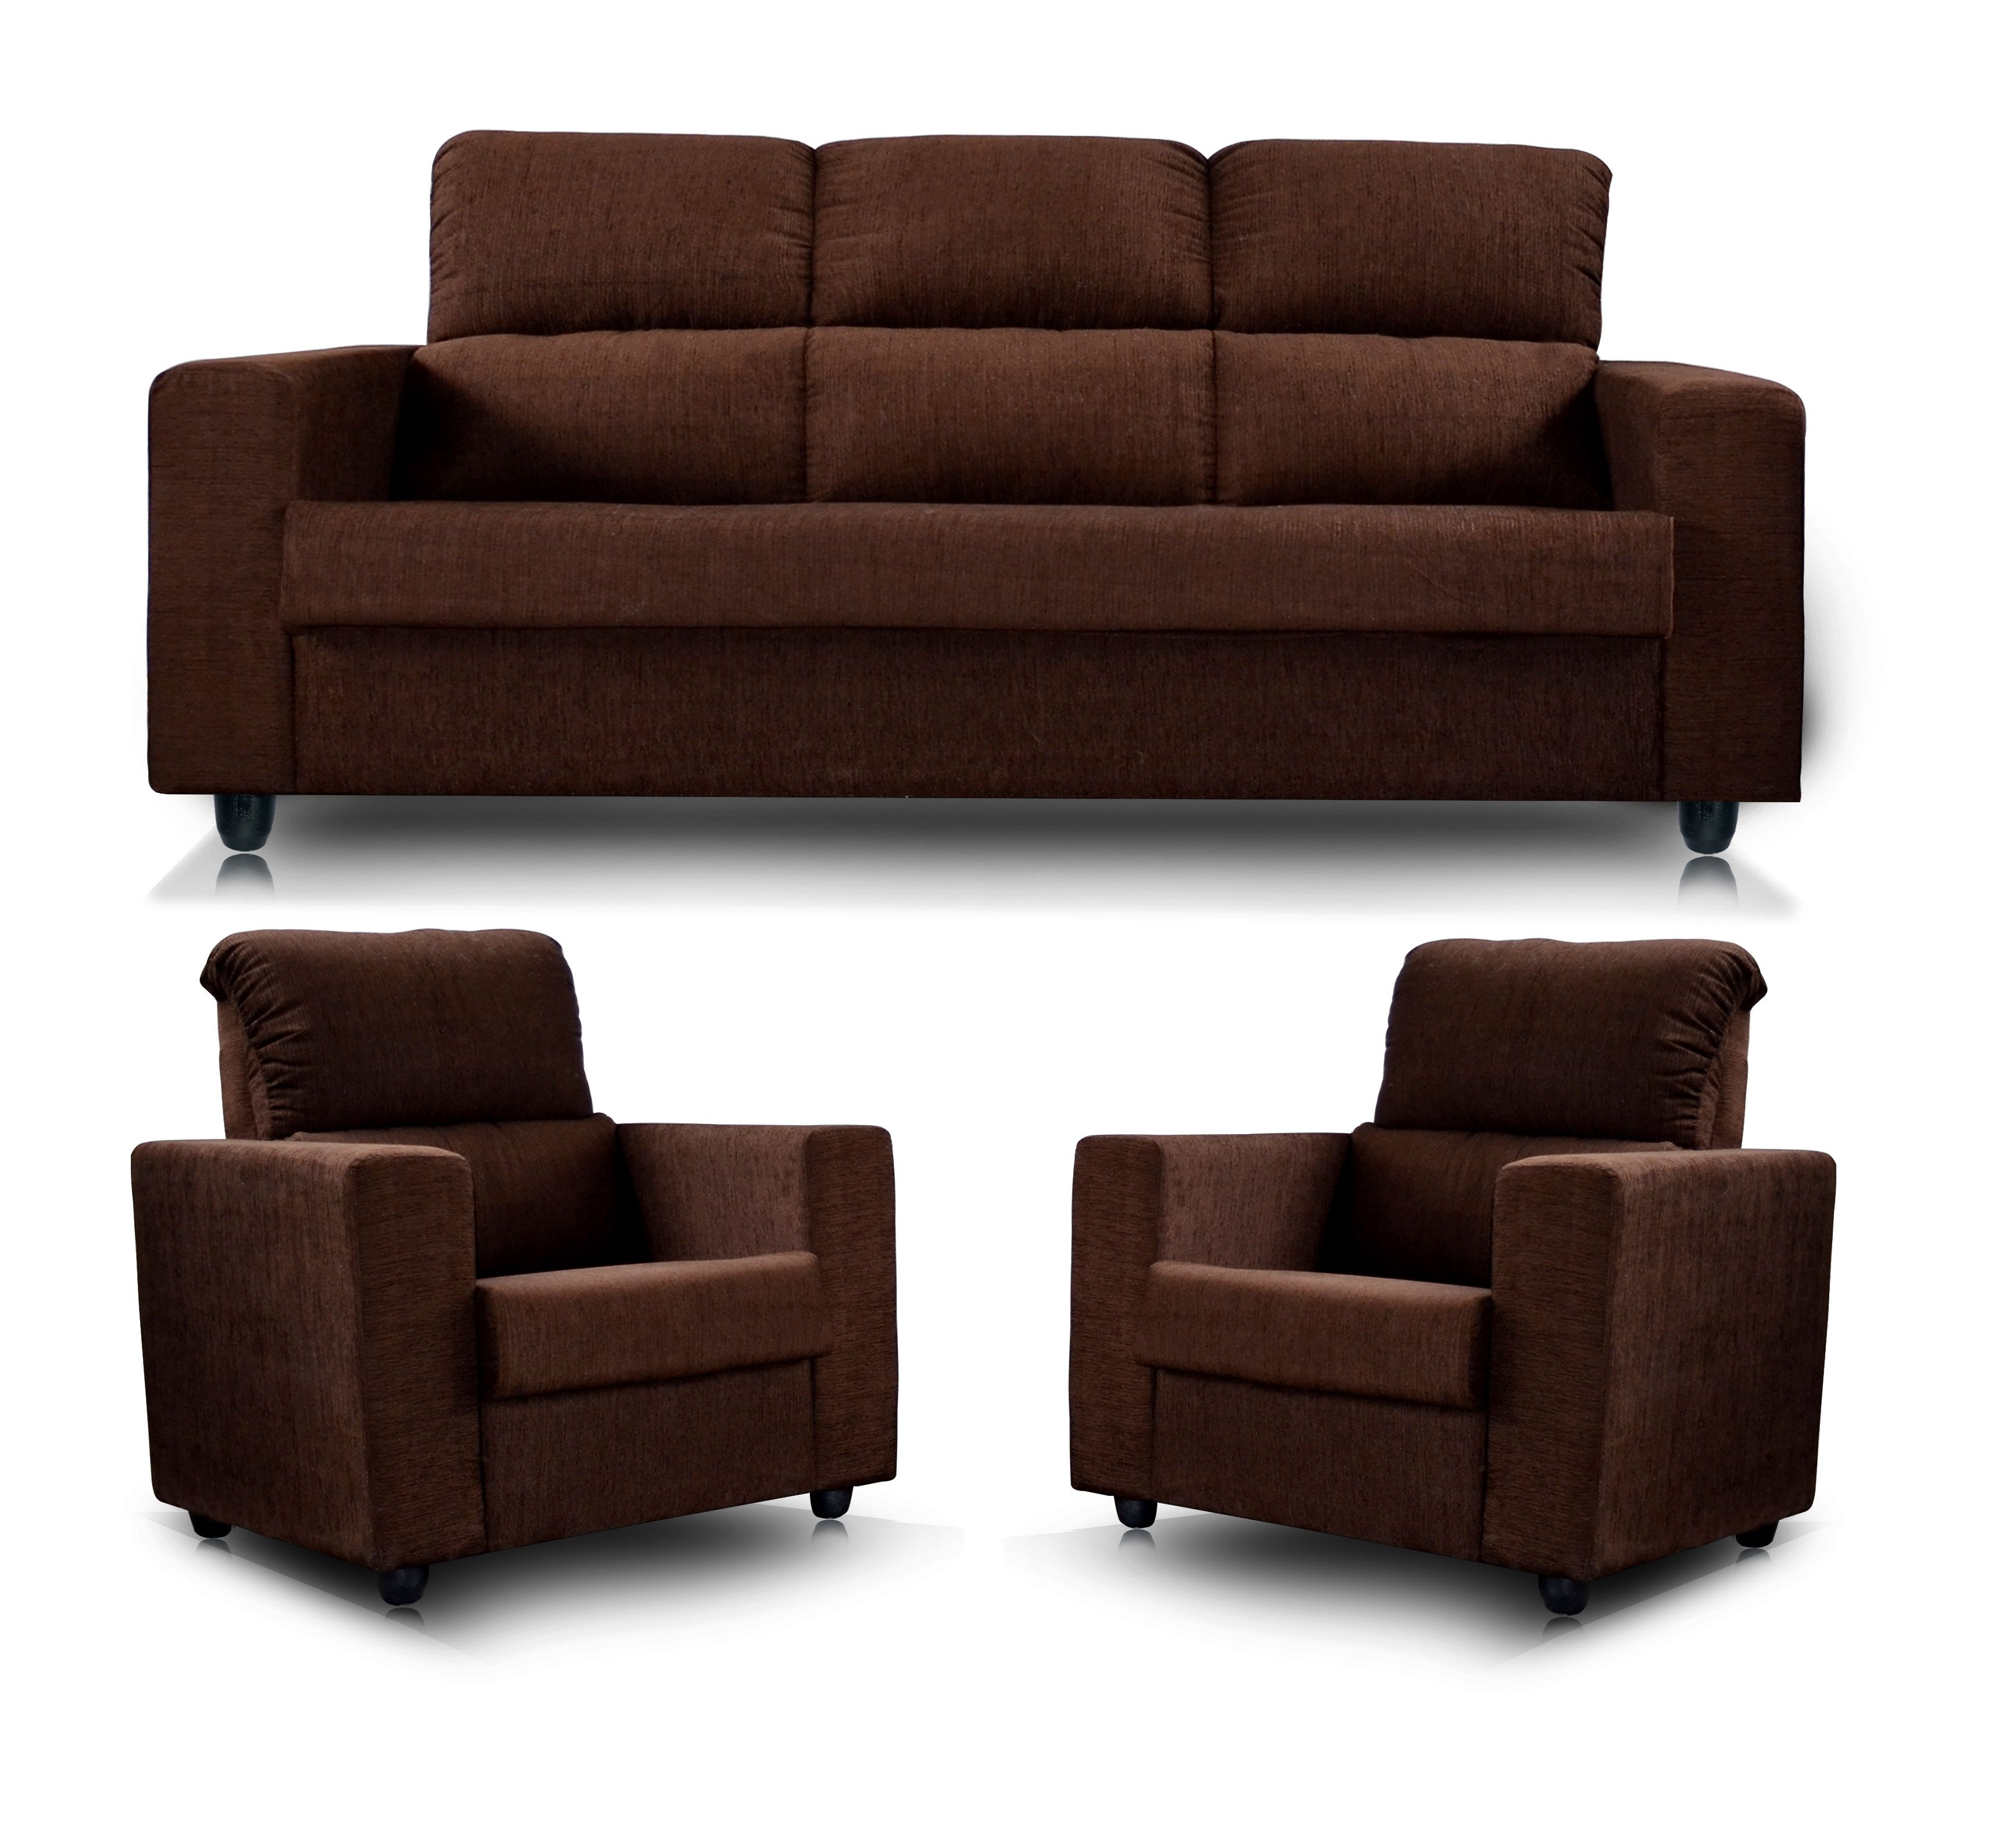 Westido Zas Fabric 3 1 1 Sofa Set Buy Westido Zas Fabric 3 1 1